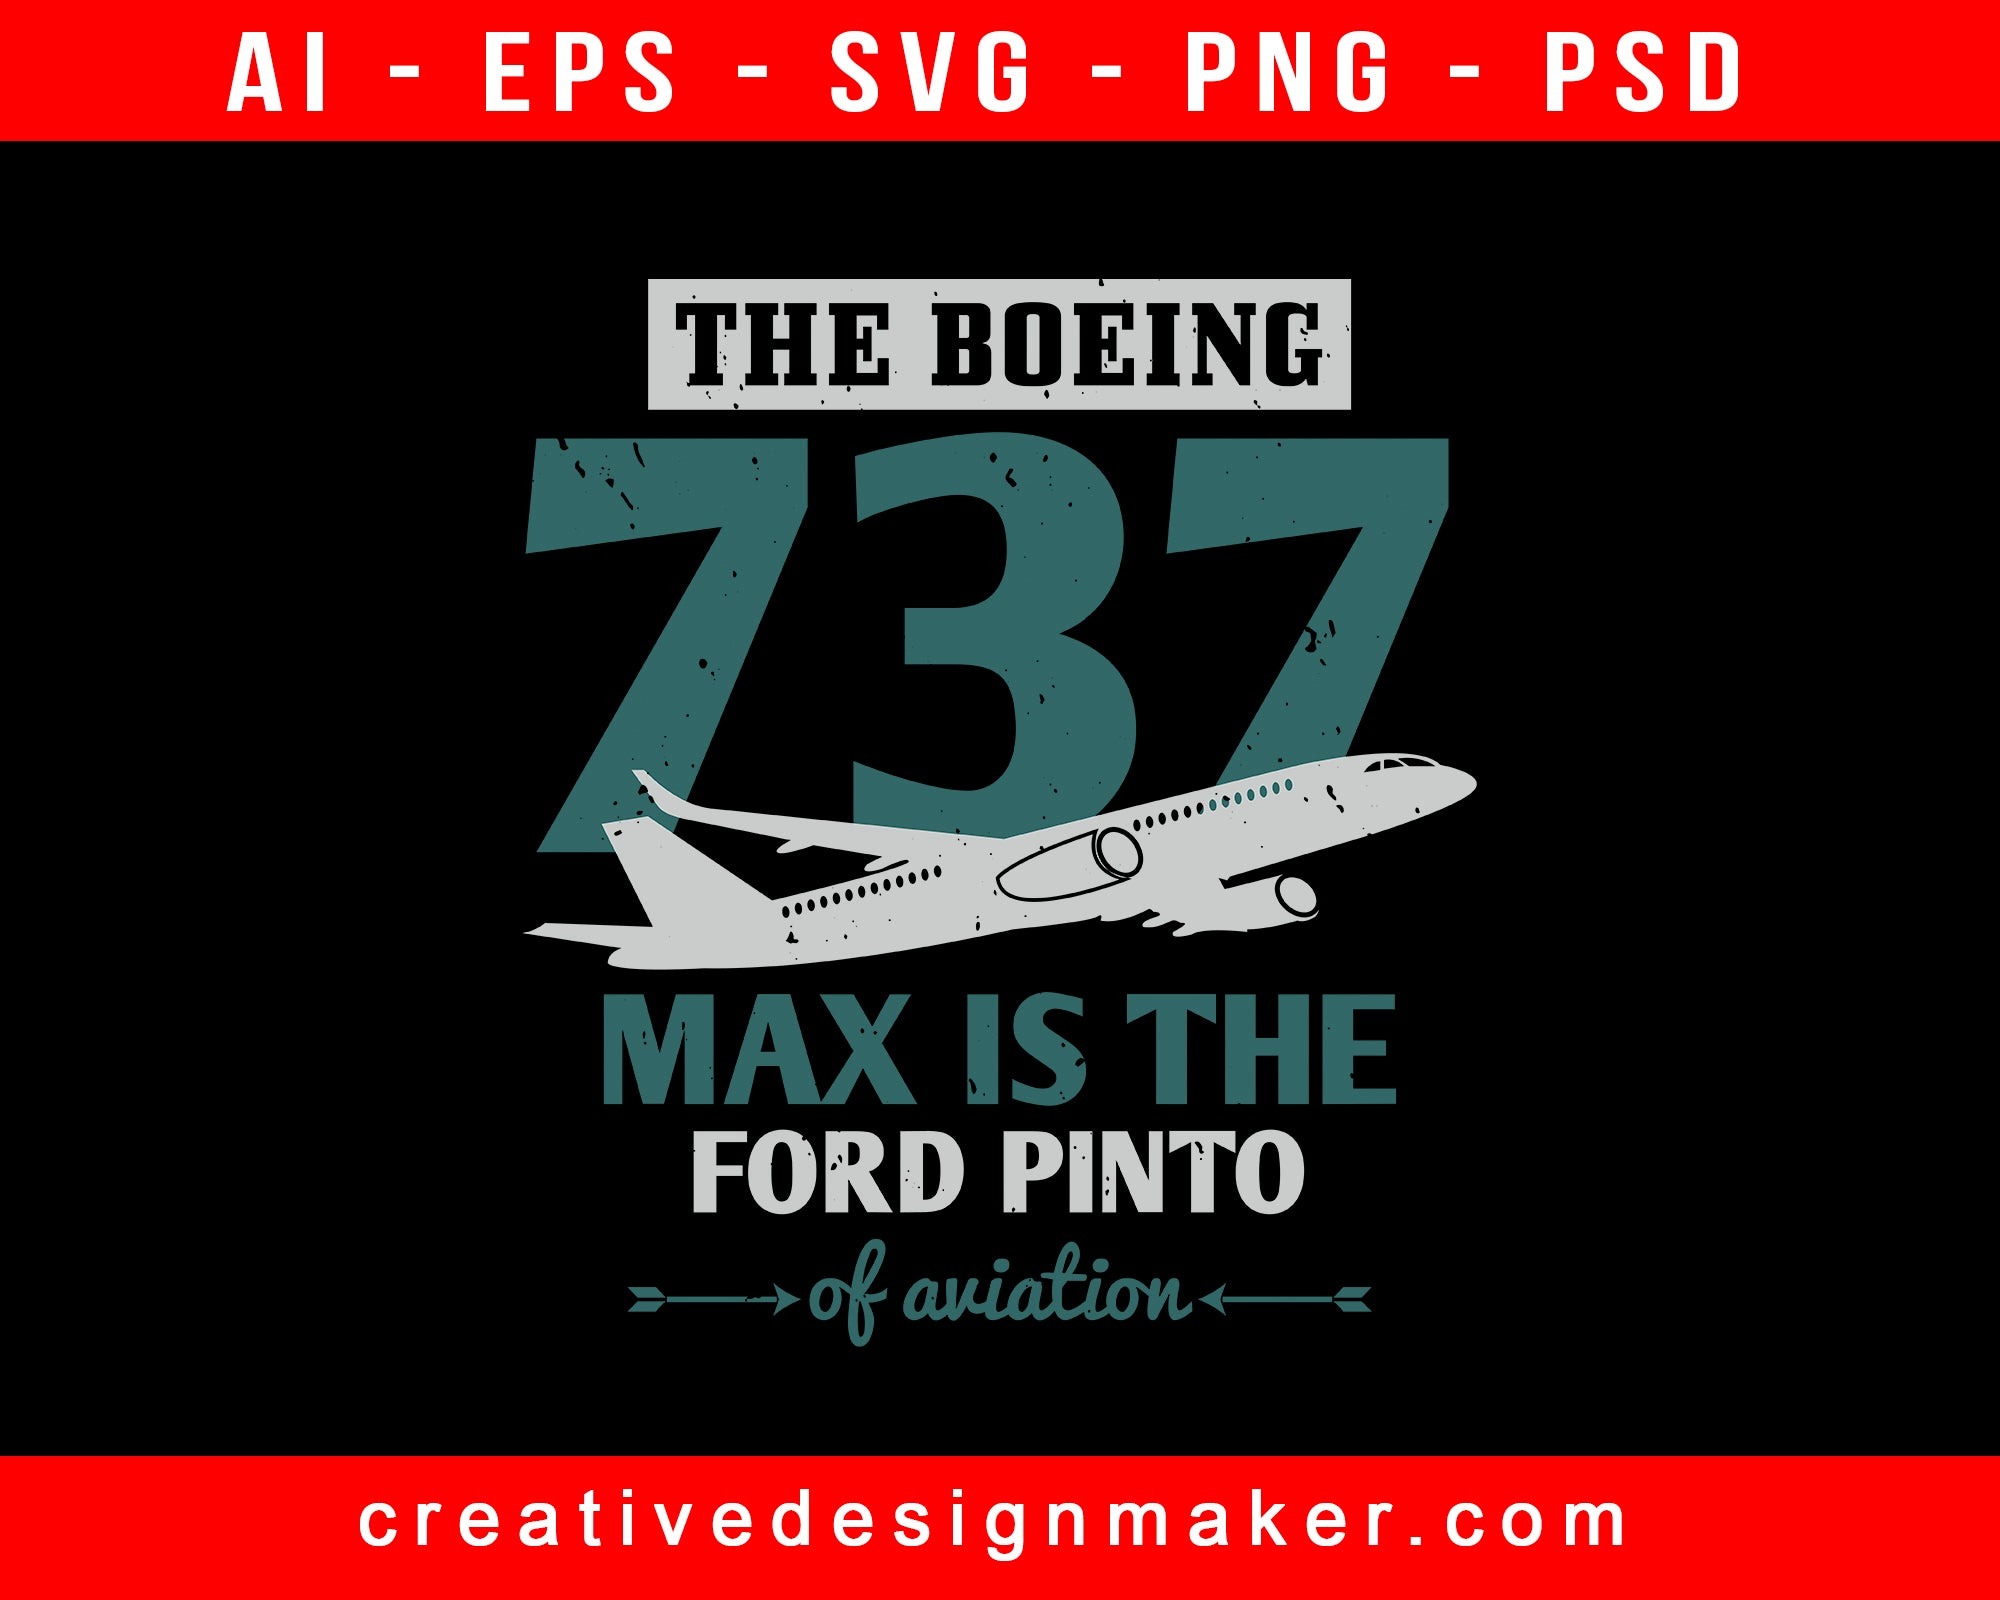 The Boeing 737 Max Is The Ford Pinto Of Aviation Aviation Print Ready Editable T-Shirt SVG Design!